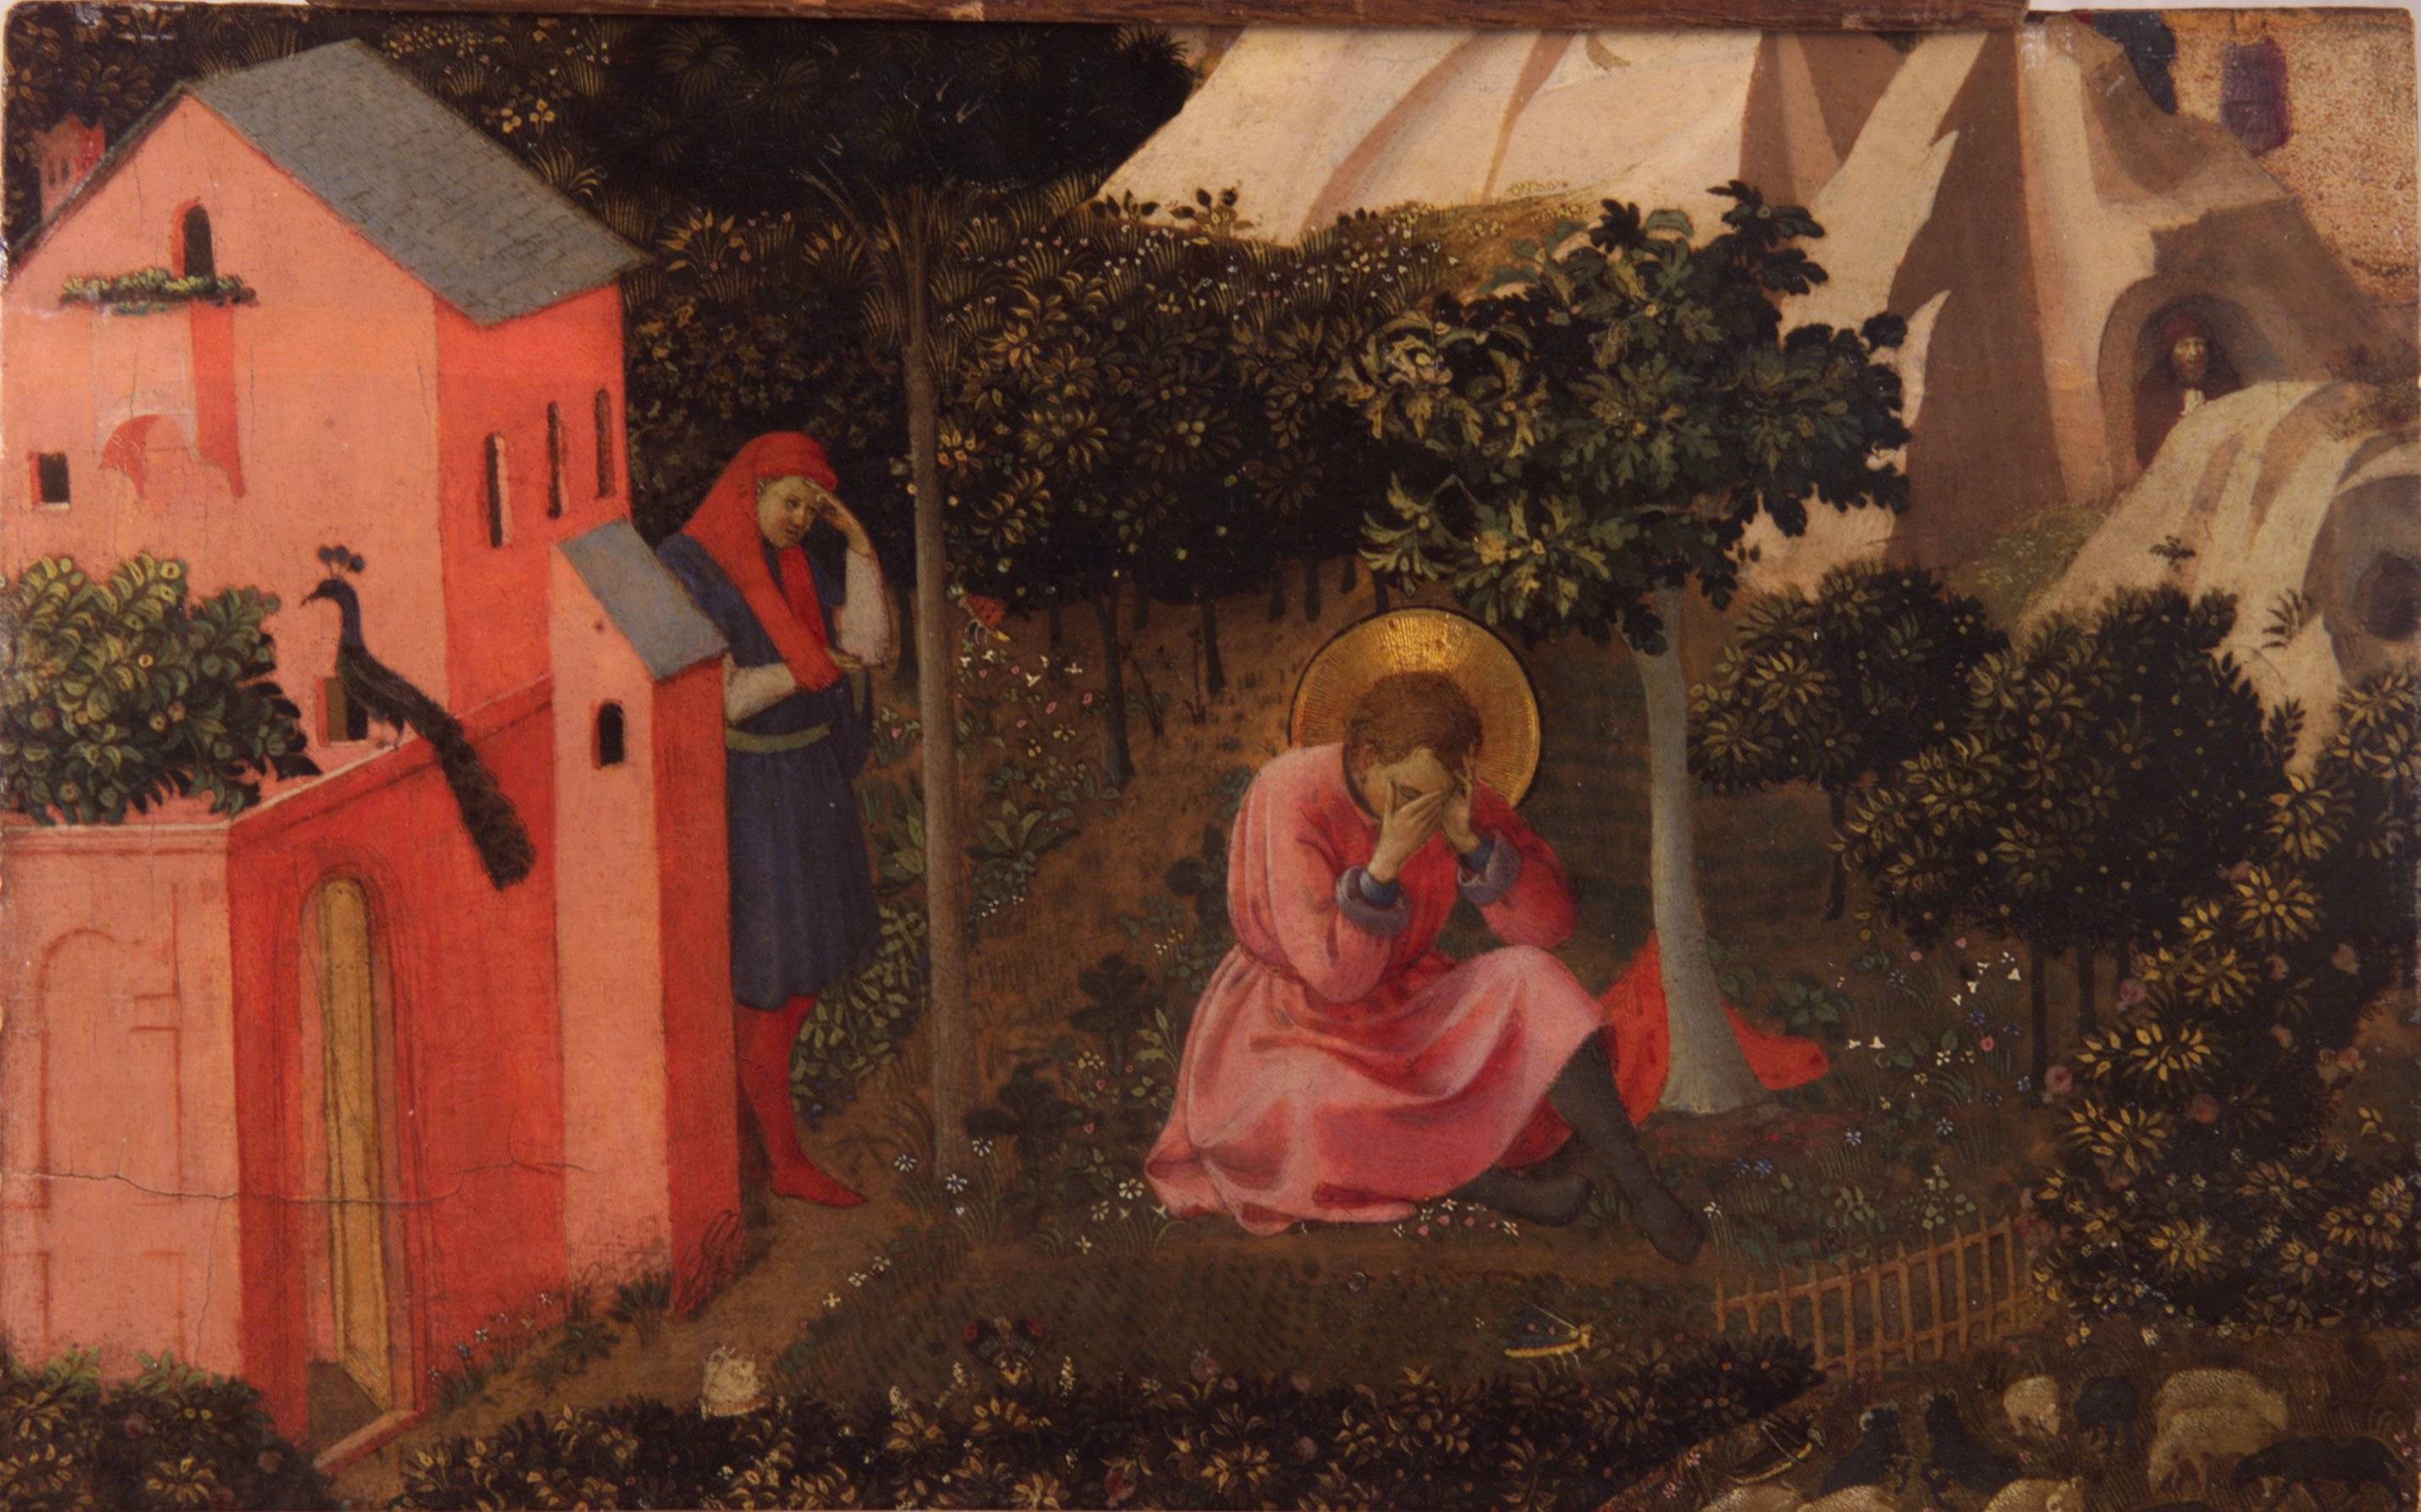 Fra angelico - conversion de saint augustin